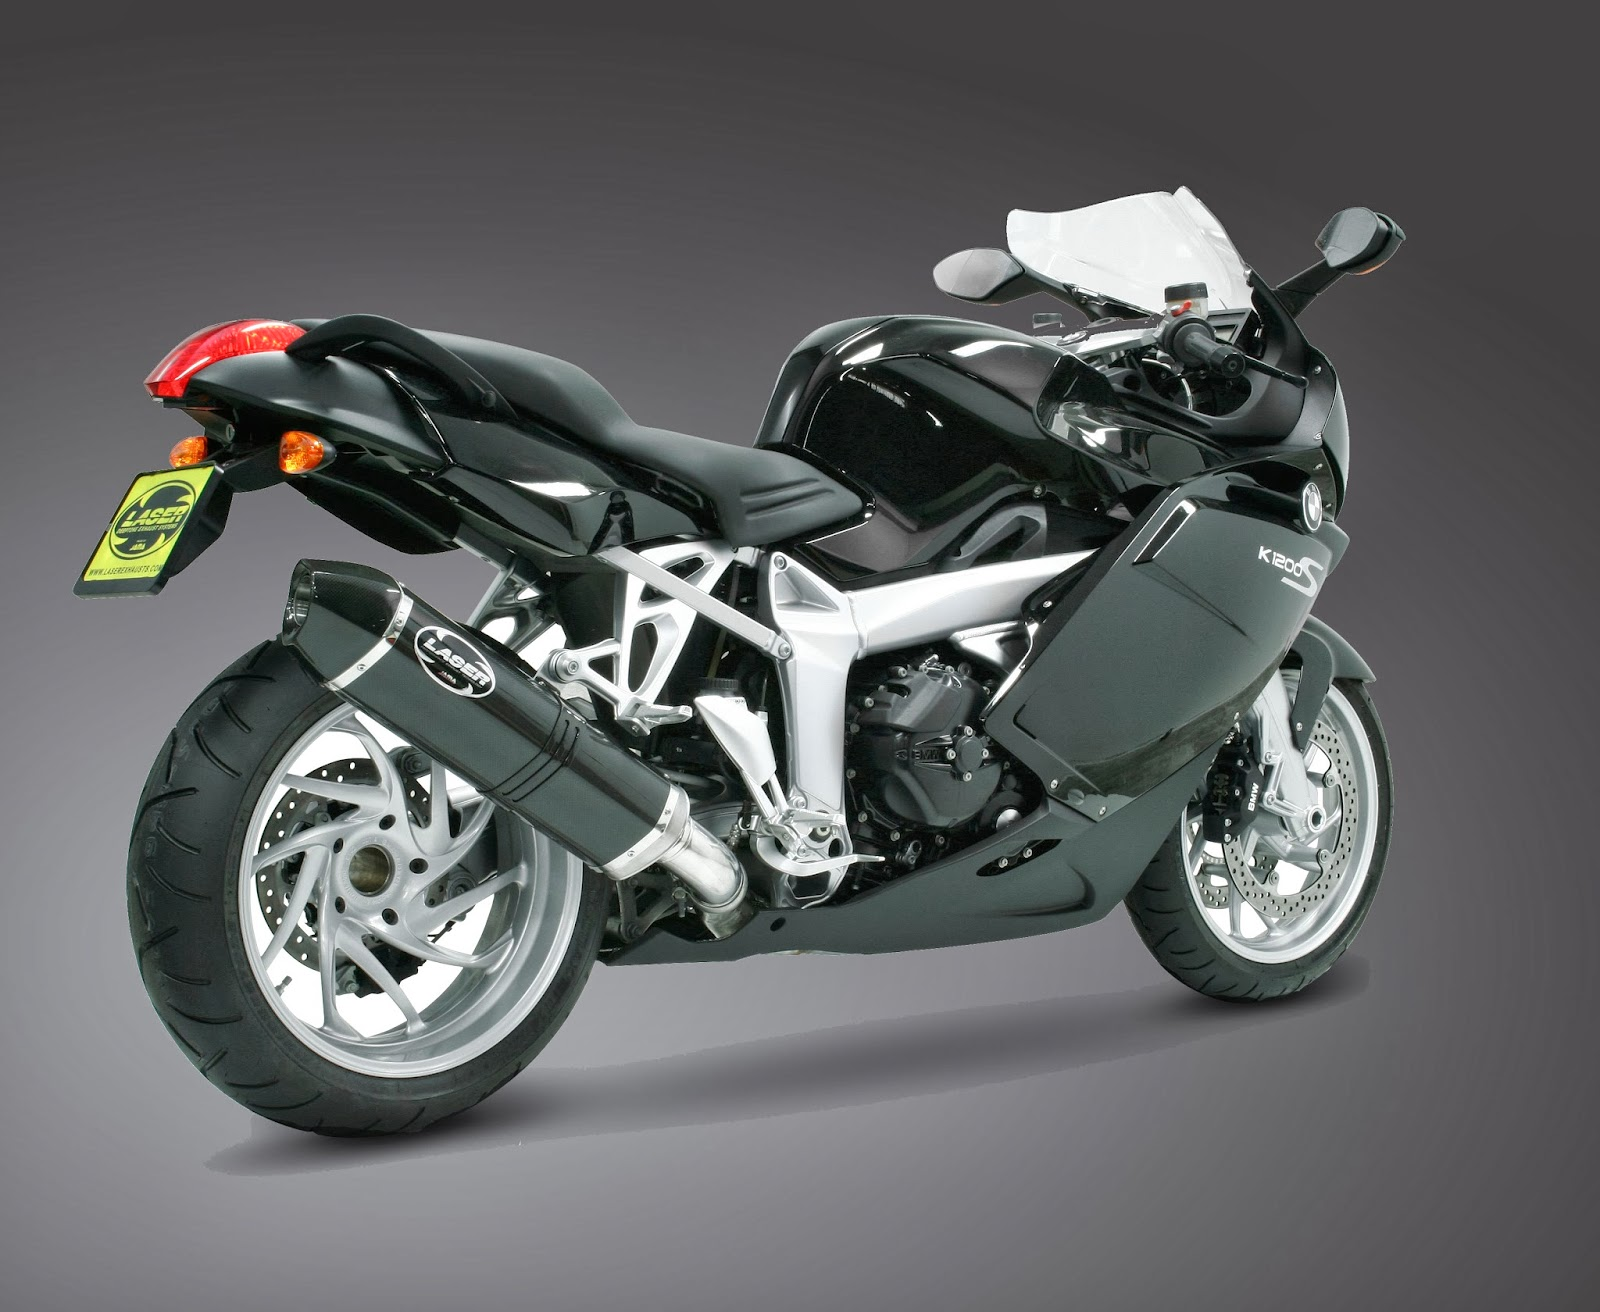 World's Fastest BMW Motorcycle Is the S1000RR - autoevolution |Fastest Bmw Bike